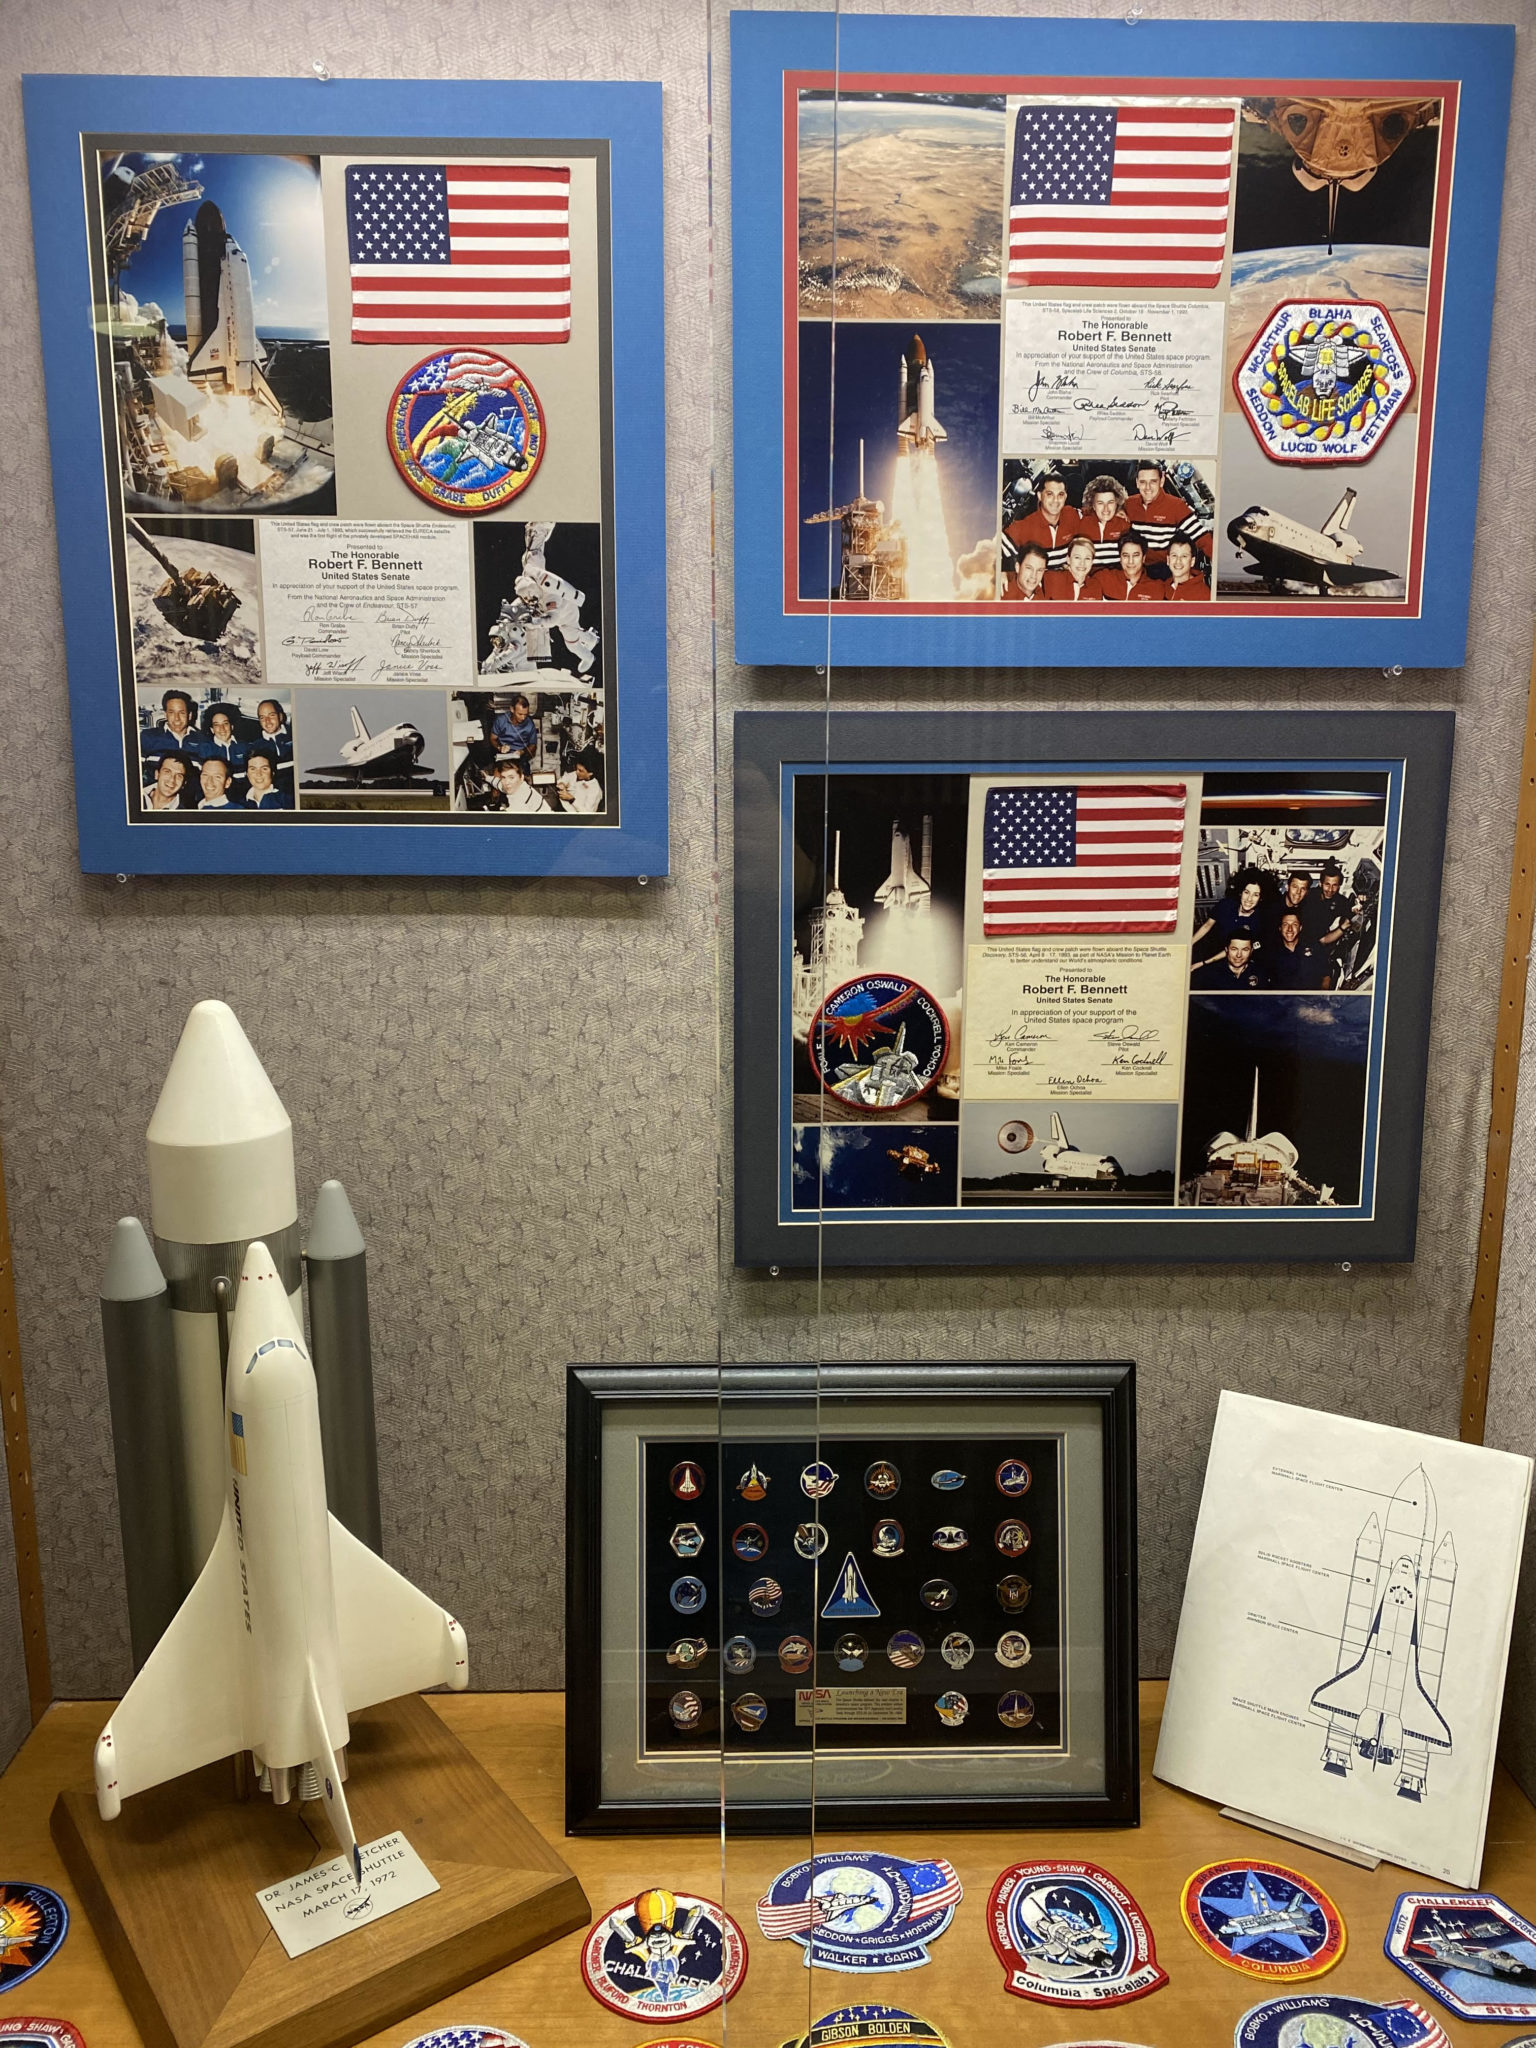 display of collages, model space ships, and patches